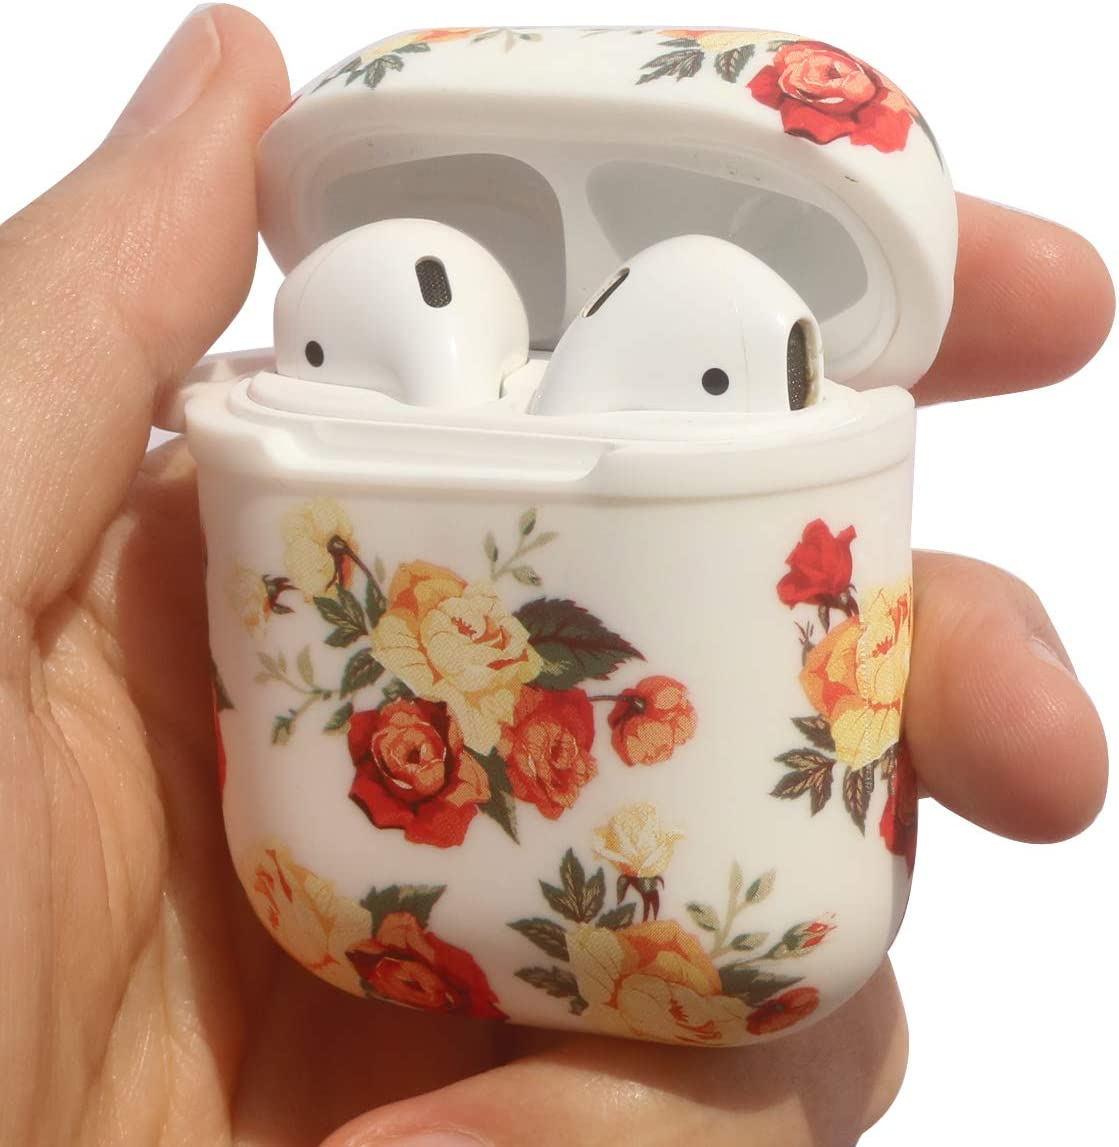 Jasonna Airpods Accessories Set Compatible with Apple Airpods 1 /& 2 Rose Print Cute Case Skin with Cute Pom Pom Keychain Airpods Case Silicone Protective Cover